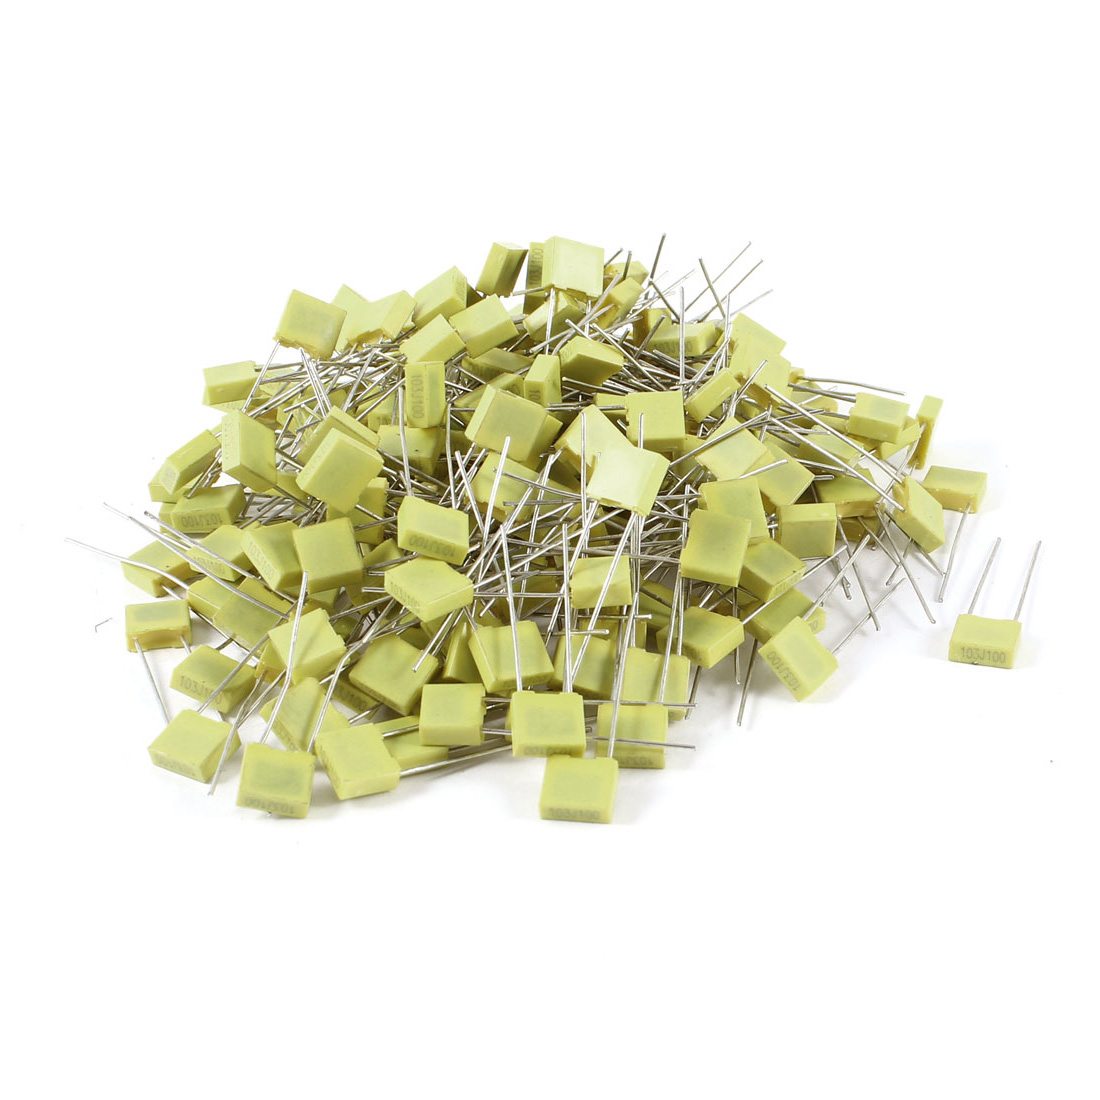 200 Pcs 100V 0.01uF 10NF Radial Lead Box Type Film Correction Capacitors Yellow